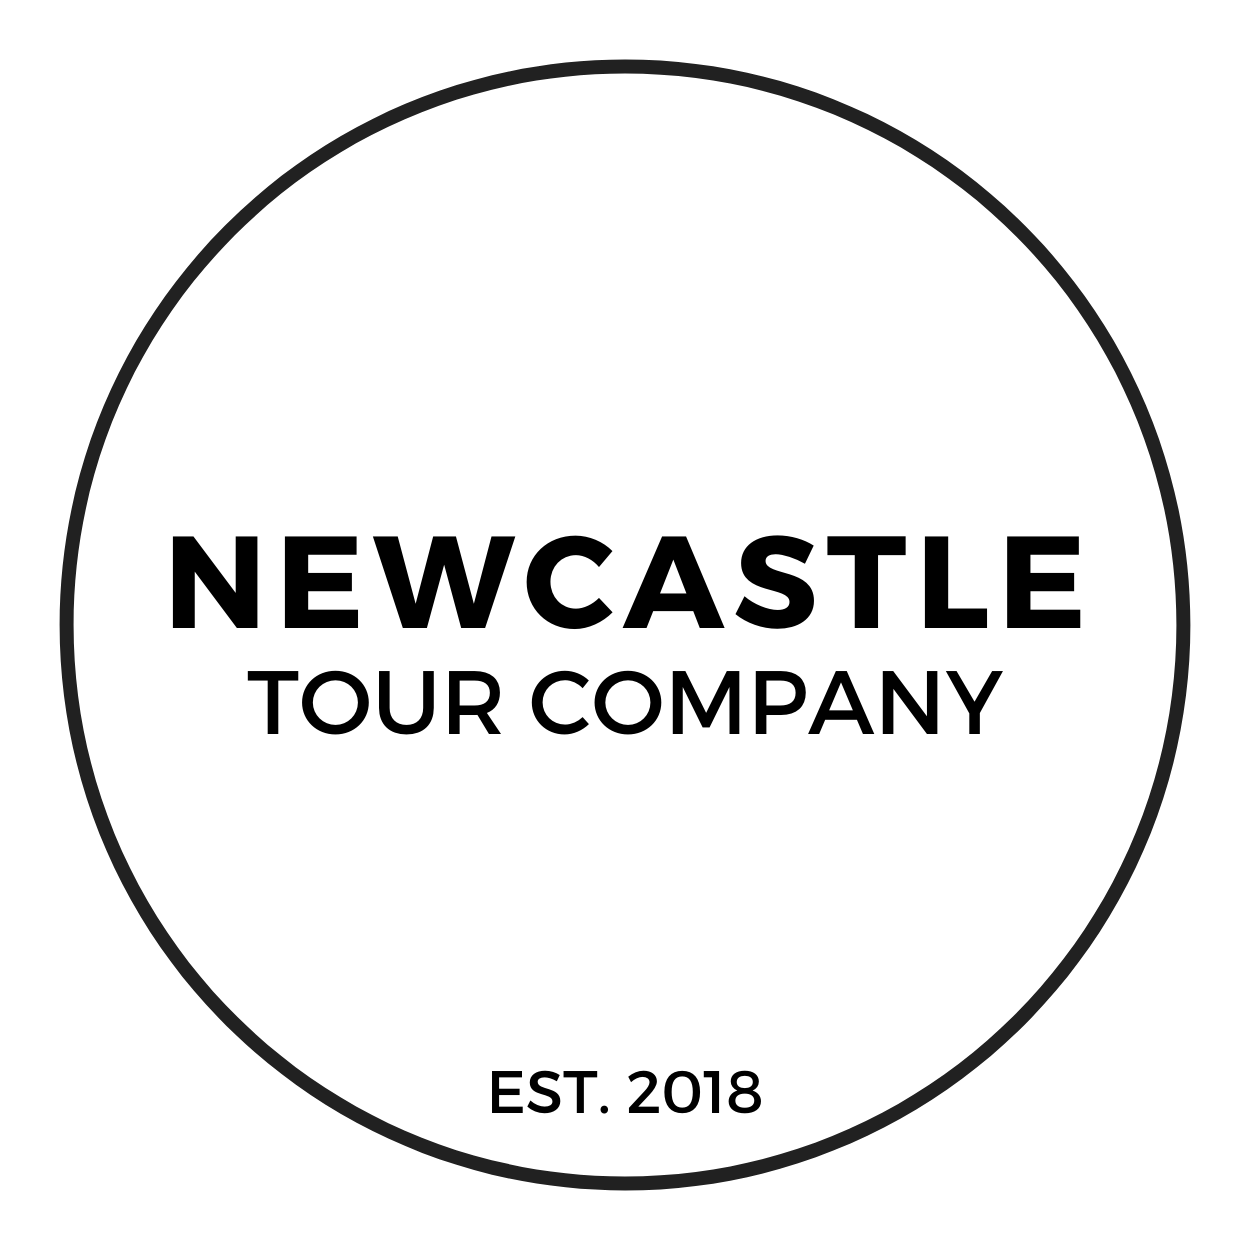 Newcastle Tour Company